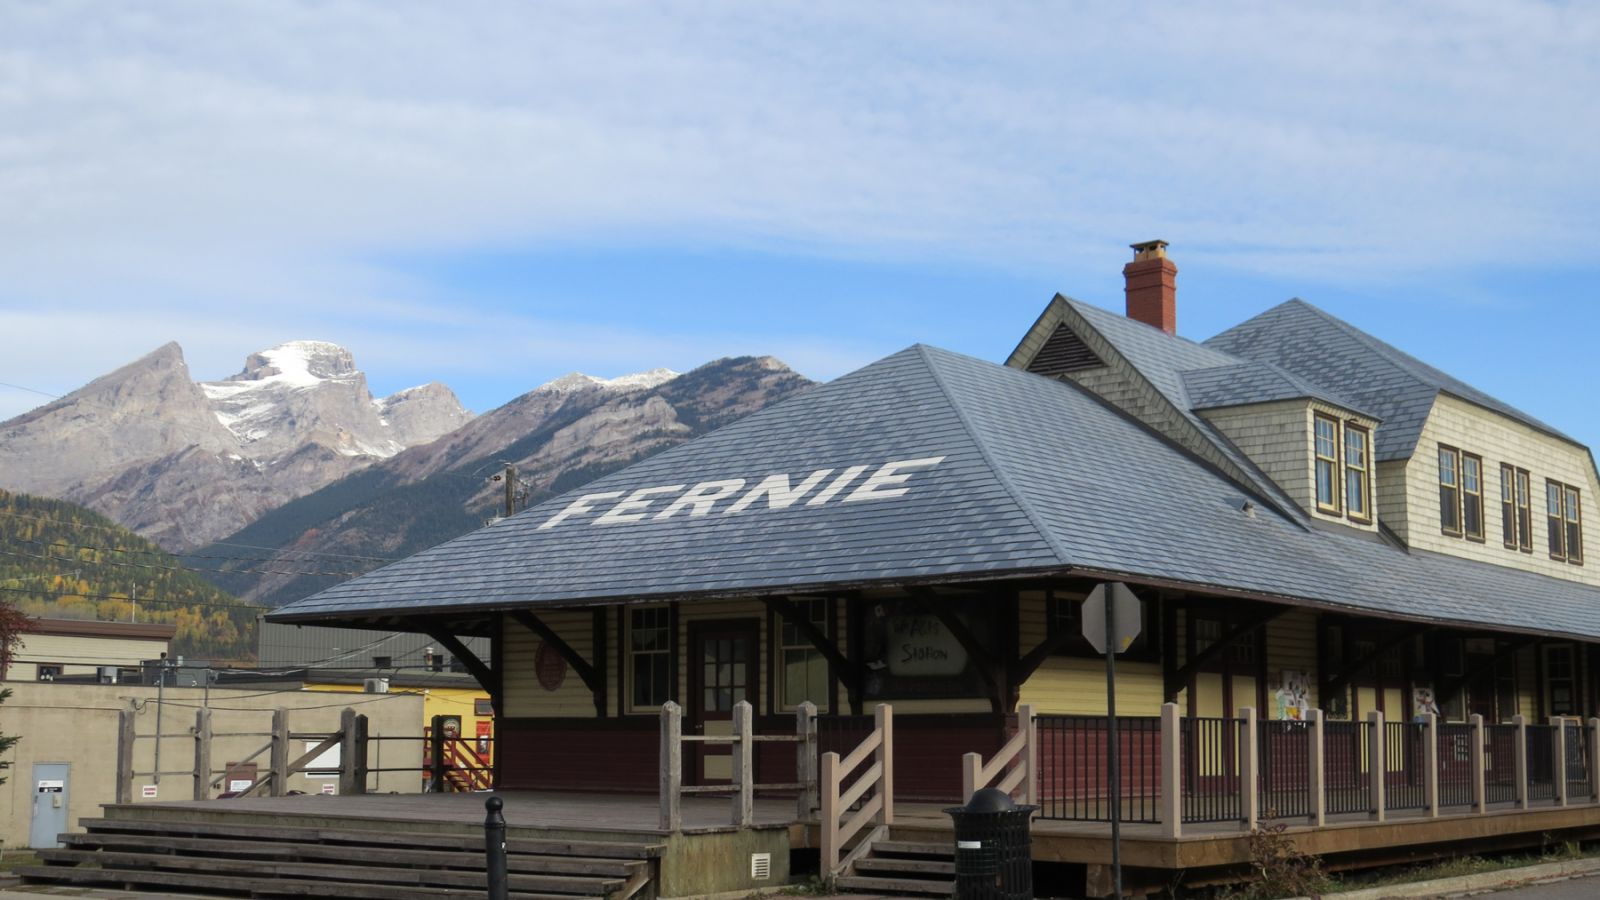 A turn-of-the-century railroad station.